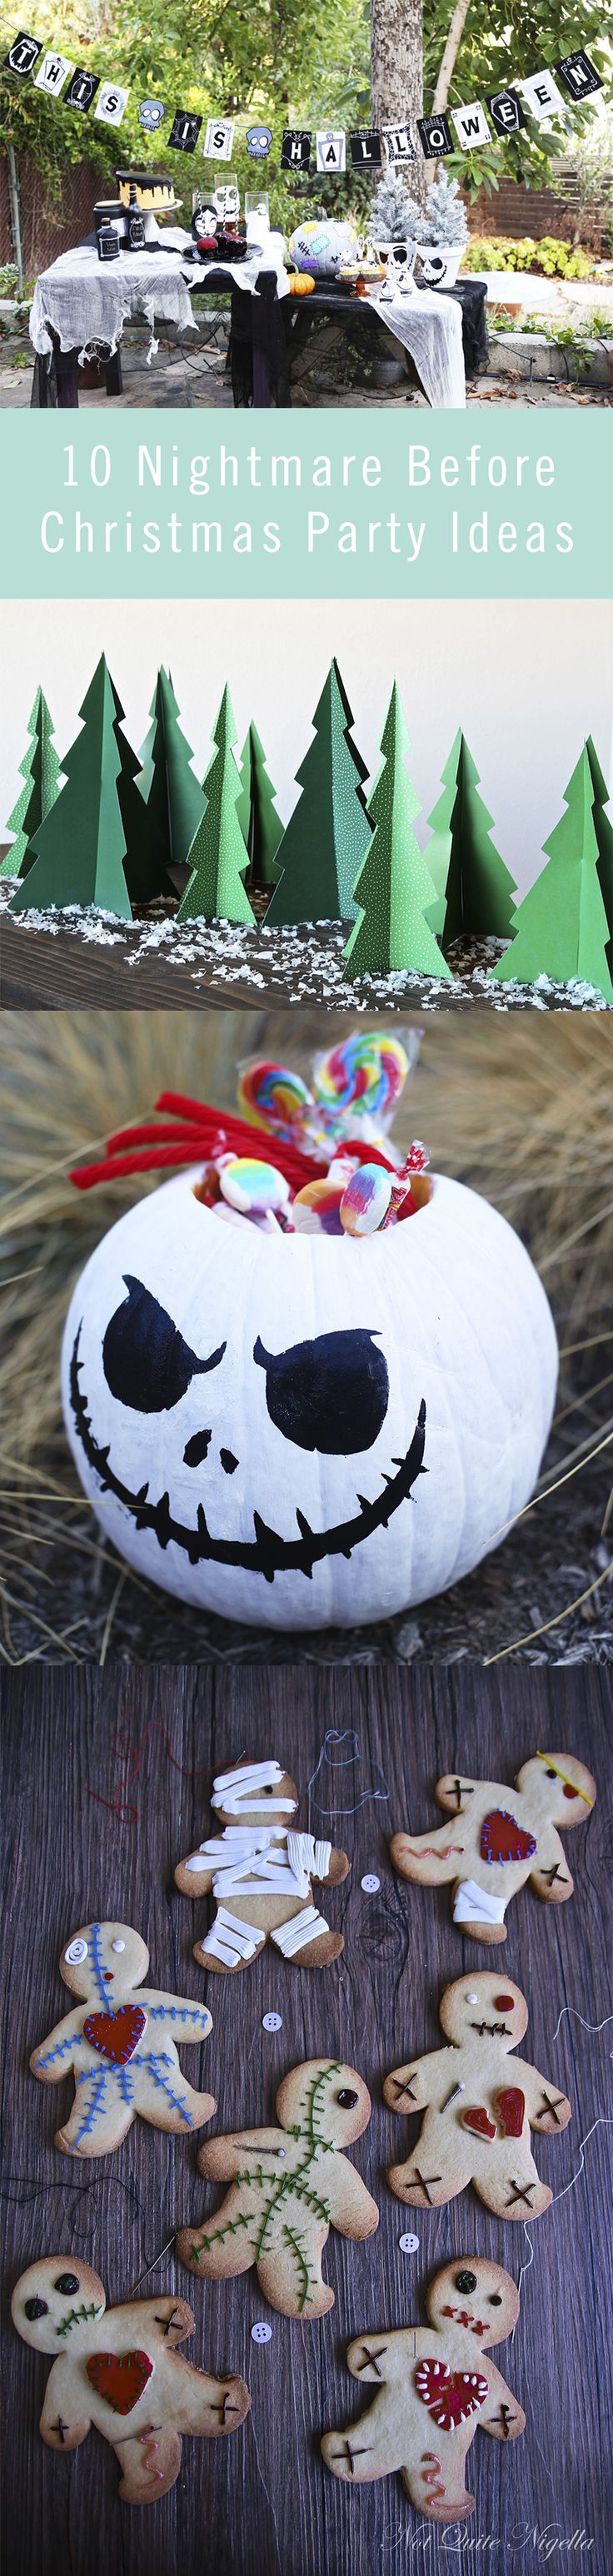 The best part of Nightmare Before Christmas is that it's festive from Halloween through the winter holidays. Whether you're celebrating in October or in December, our crafts and recipes will help you throw the perfect DIY Nightmare party.